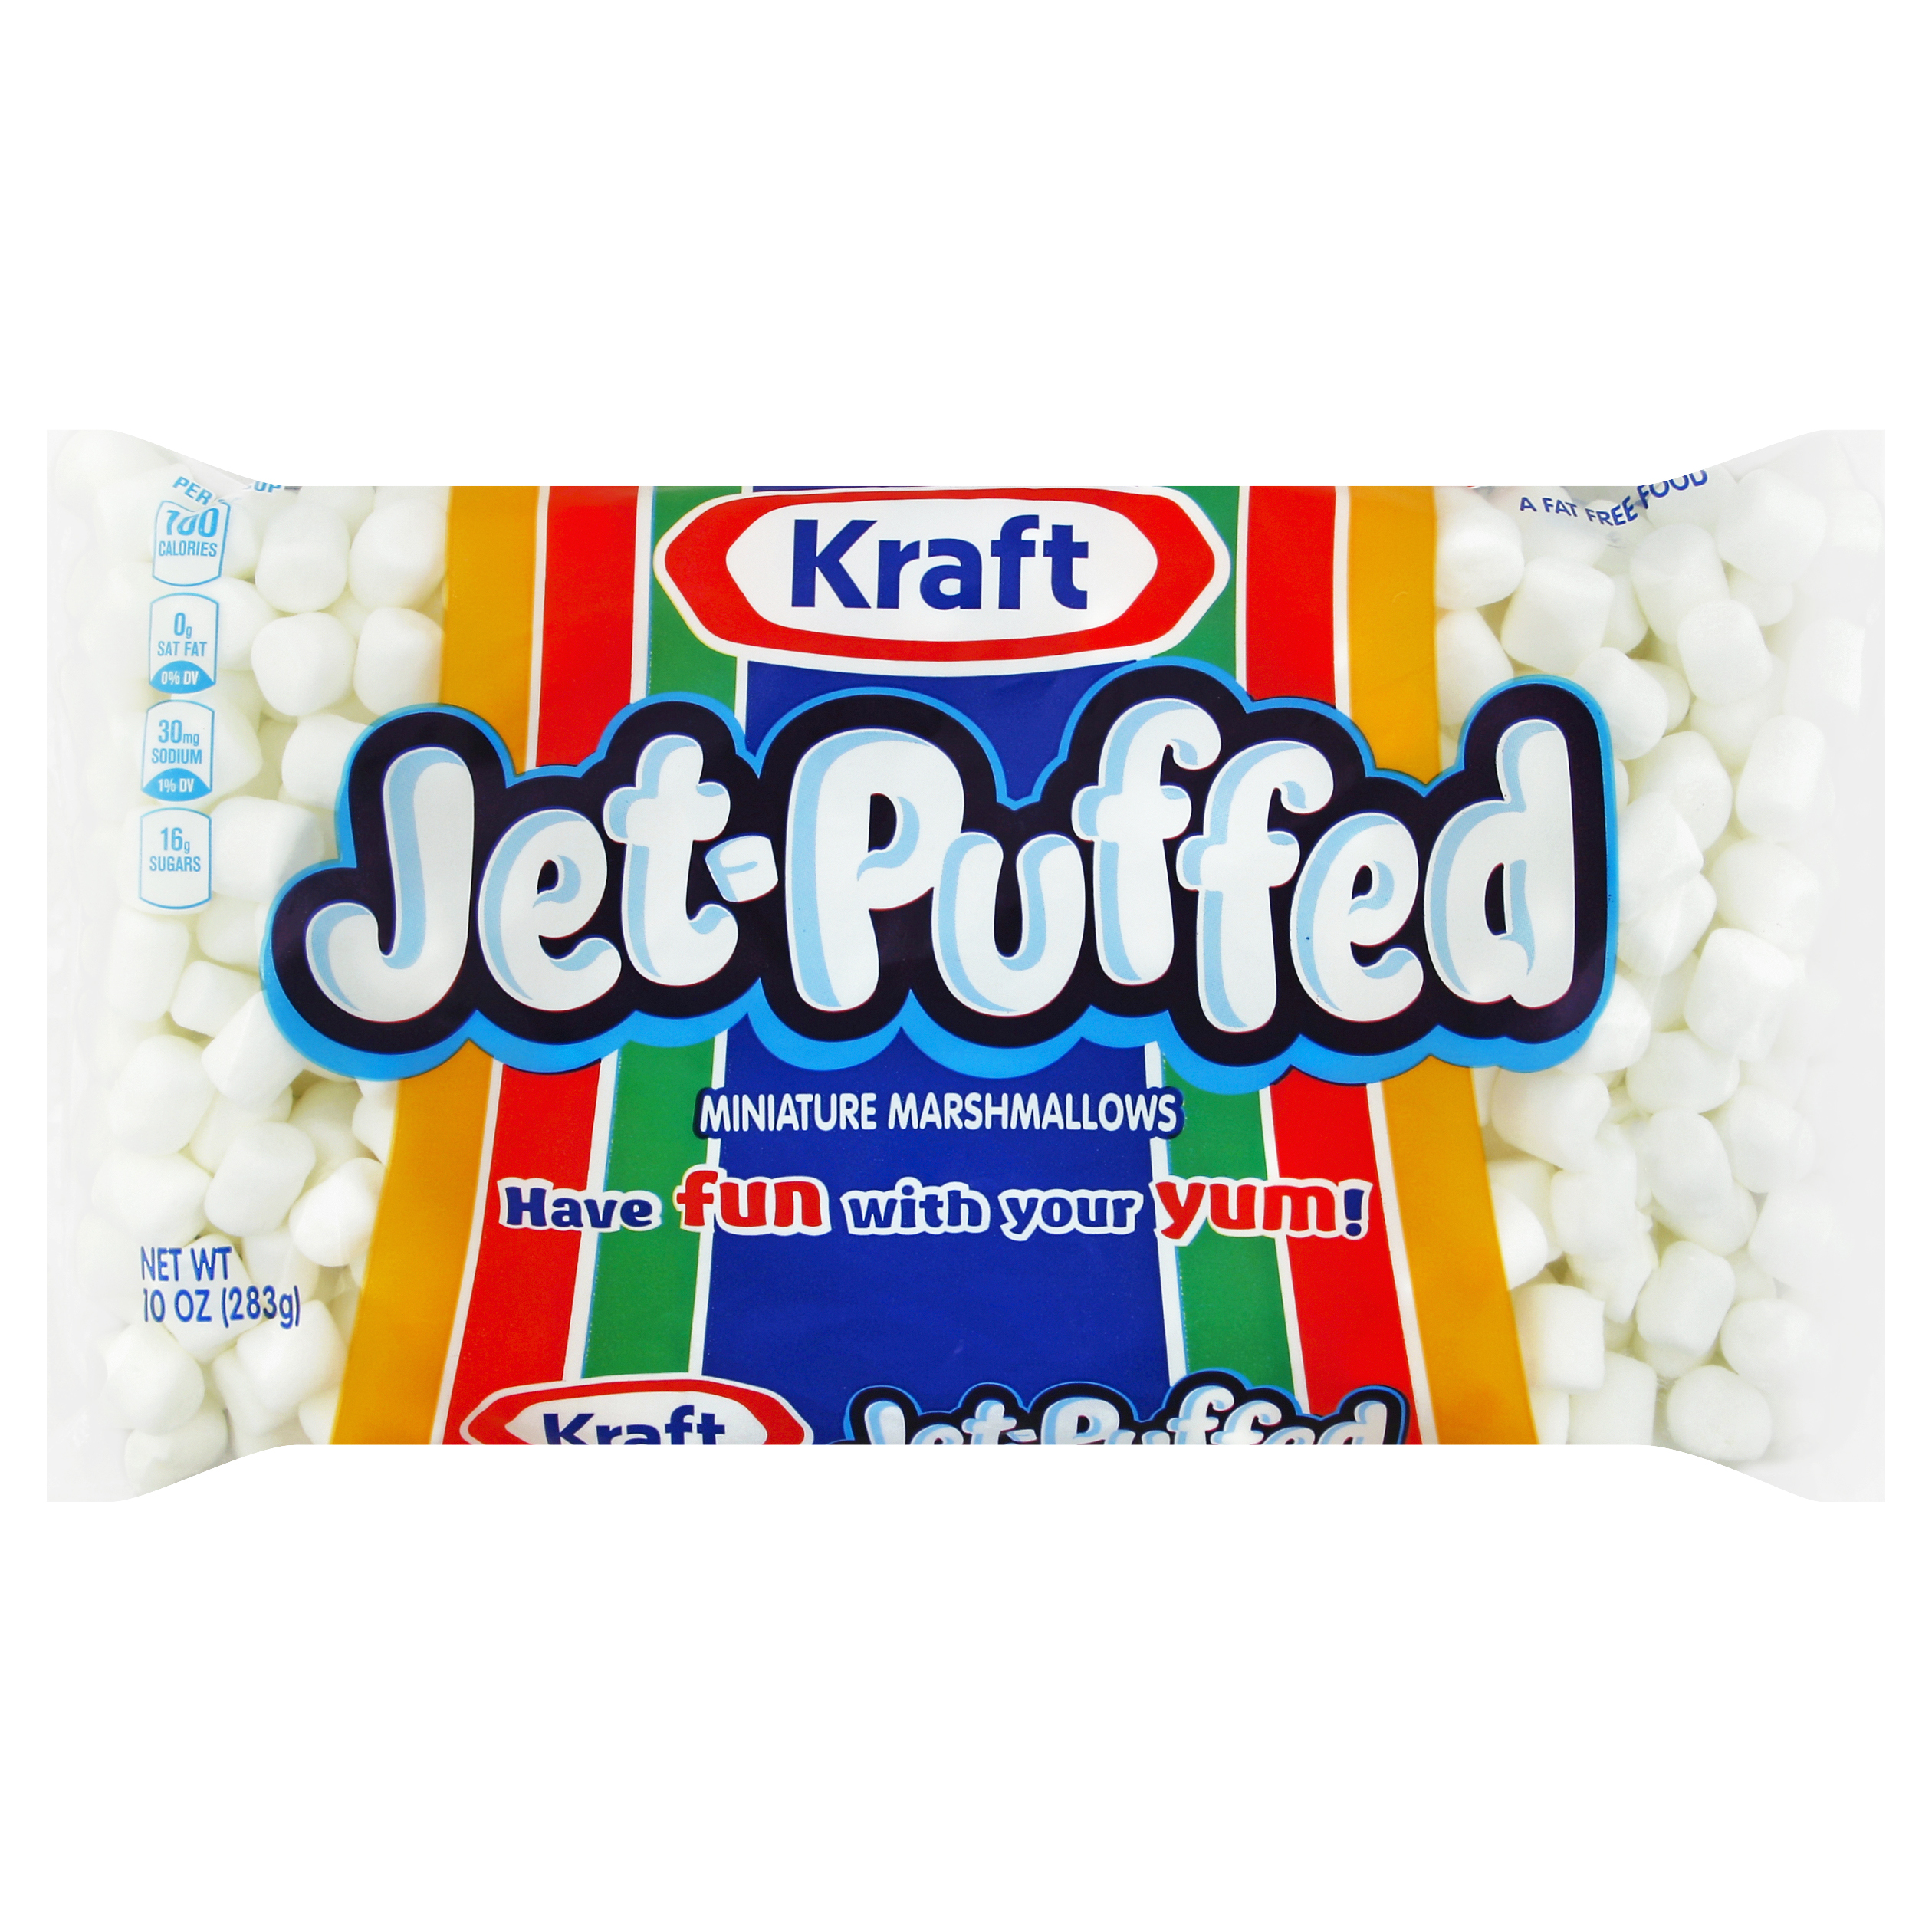 Jet-Puffed Miniature Marshmallows 10 oz Bag image